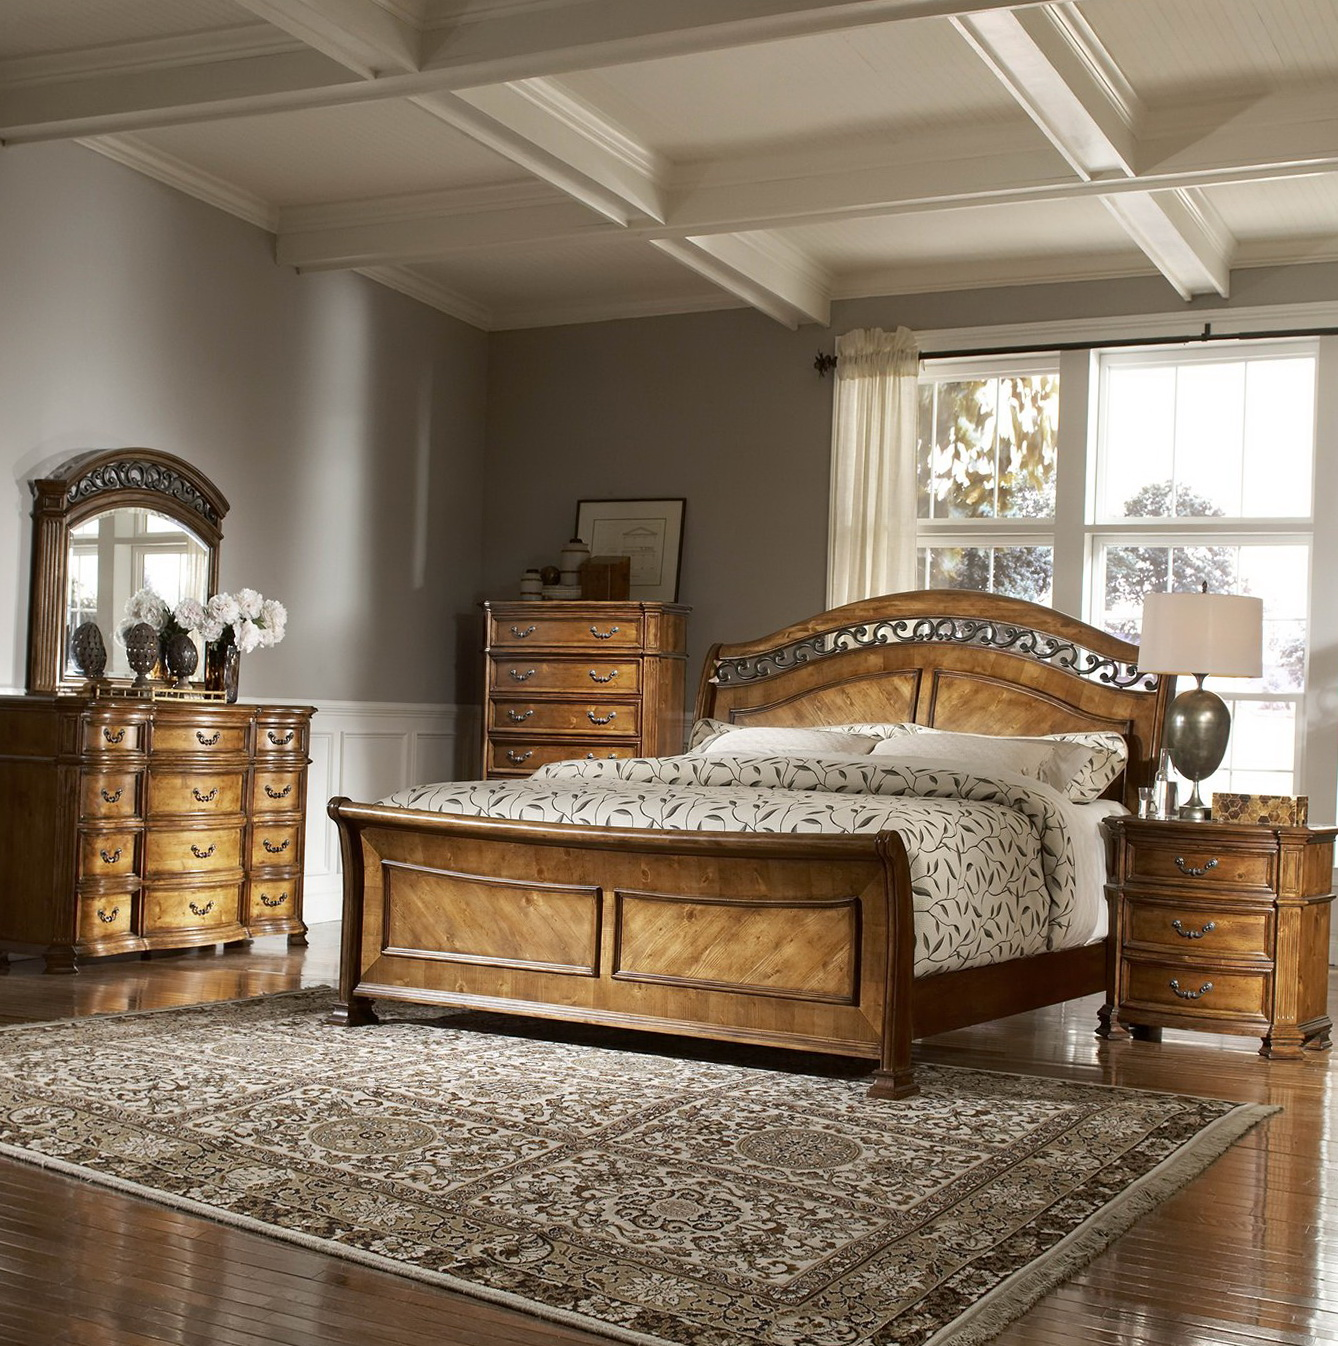 Antique Pine Bedroom Furniture